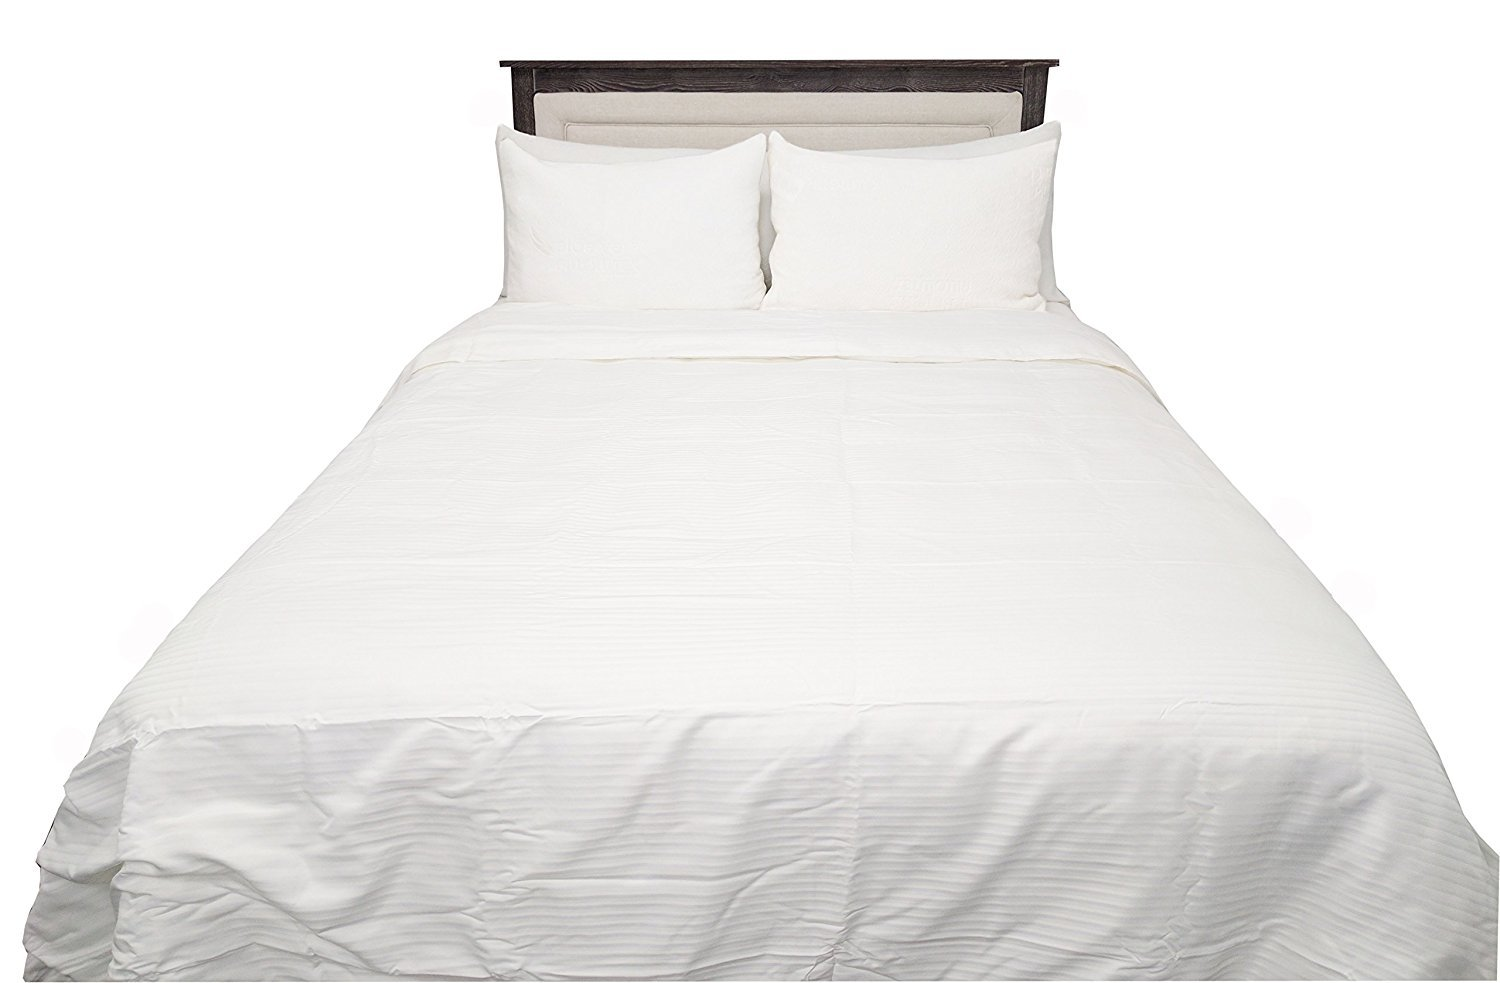 Westin Hotels & Resorts King Duvet Cover